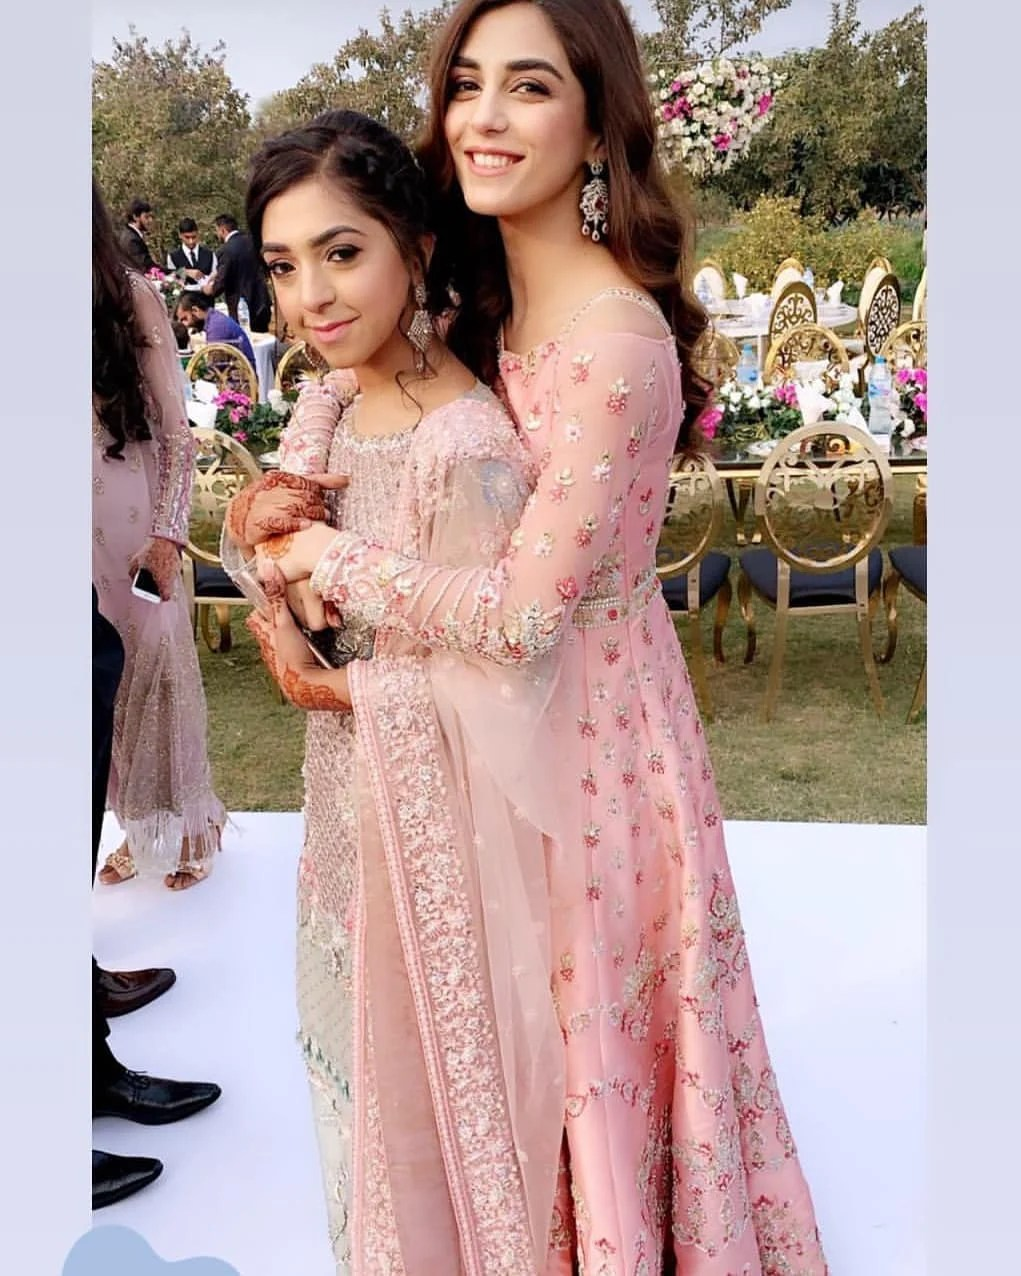 Awesome Maya Ali at her Friend Mehndi Event